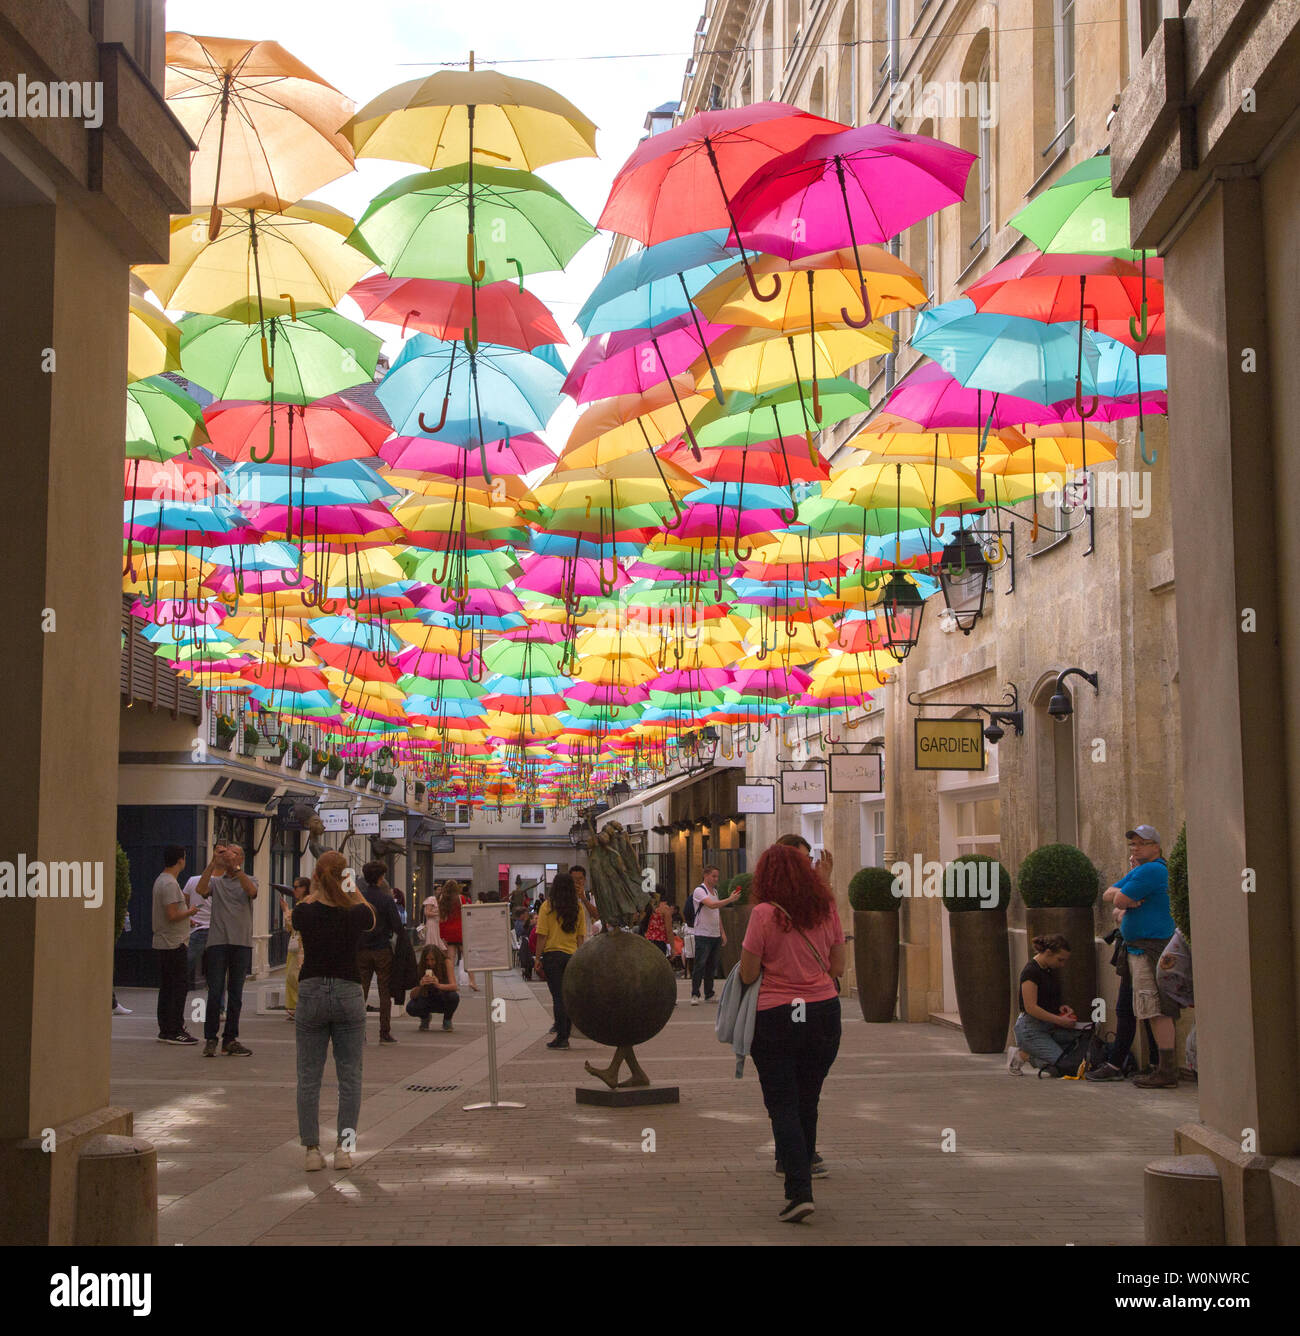 The Umbrella Sky Project by Patricia Cunha deligts visitors to Le Village Royal in Paris France also shown is a sculpture by Dirk De Kayzer Stock Photo